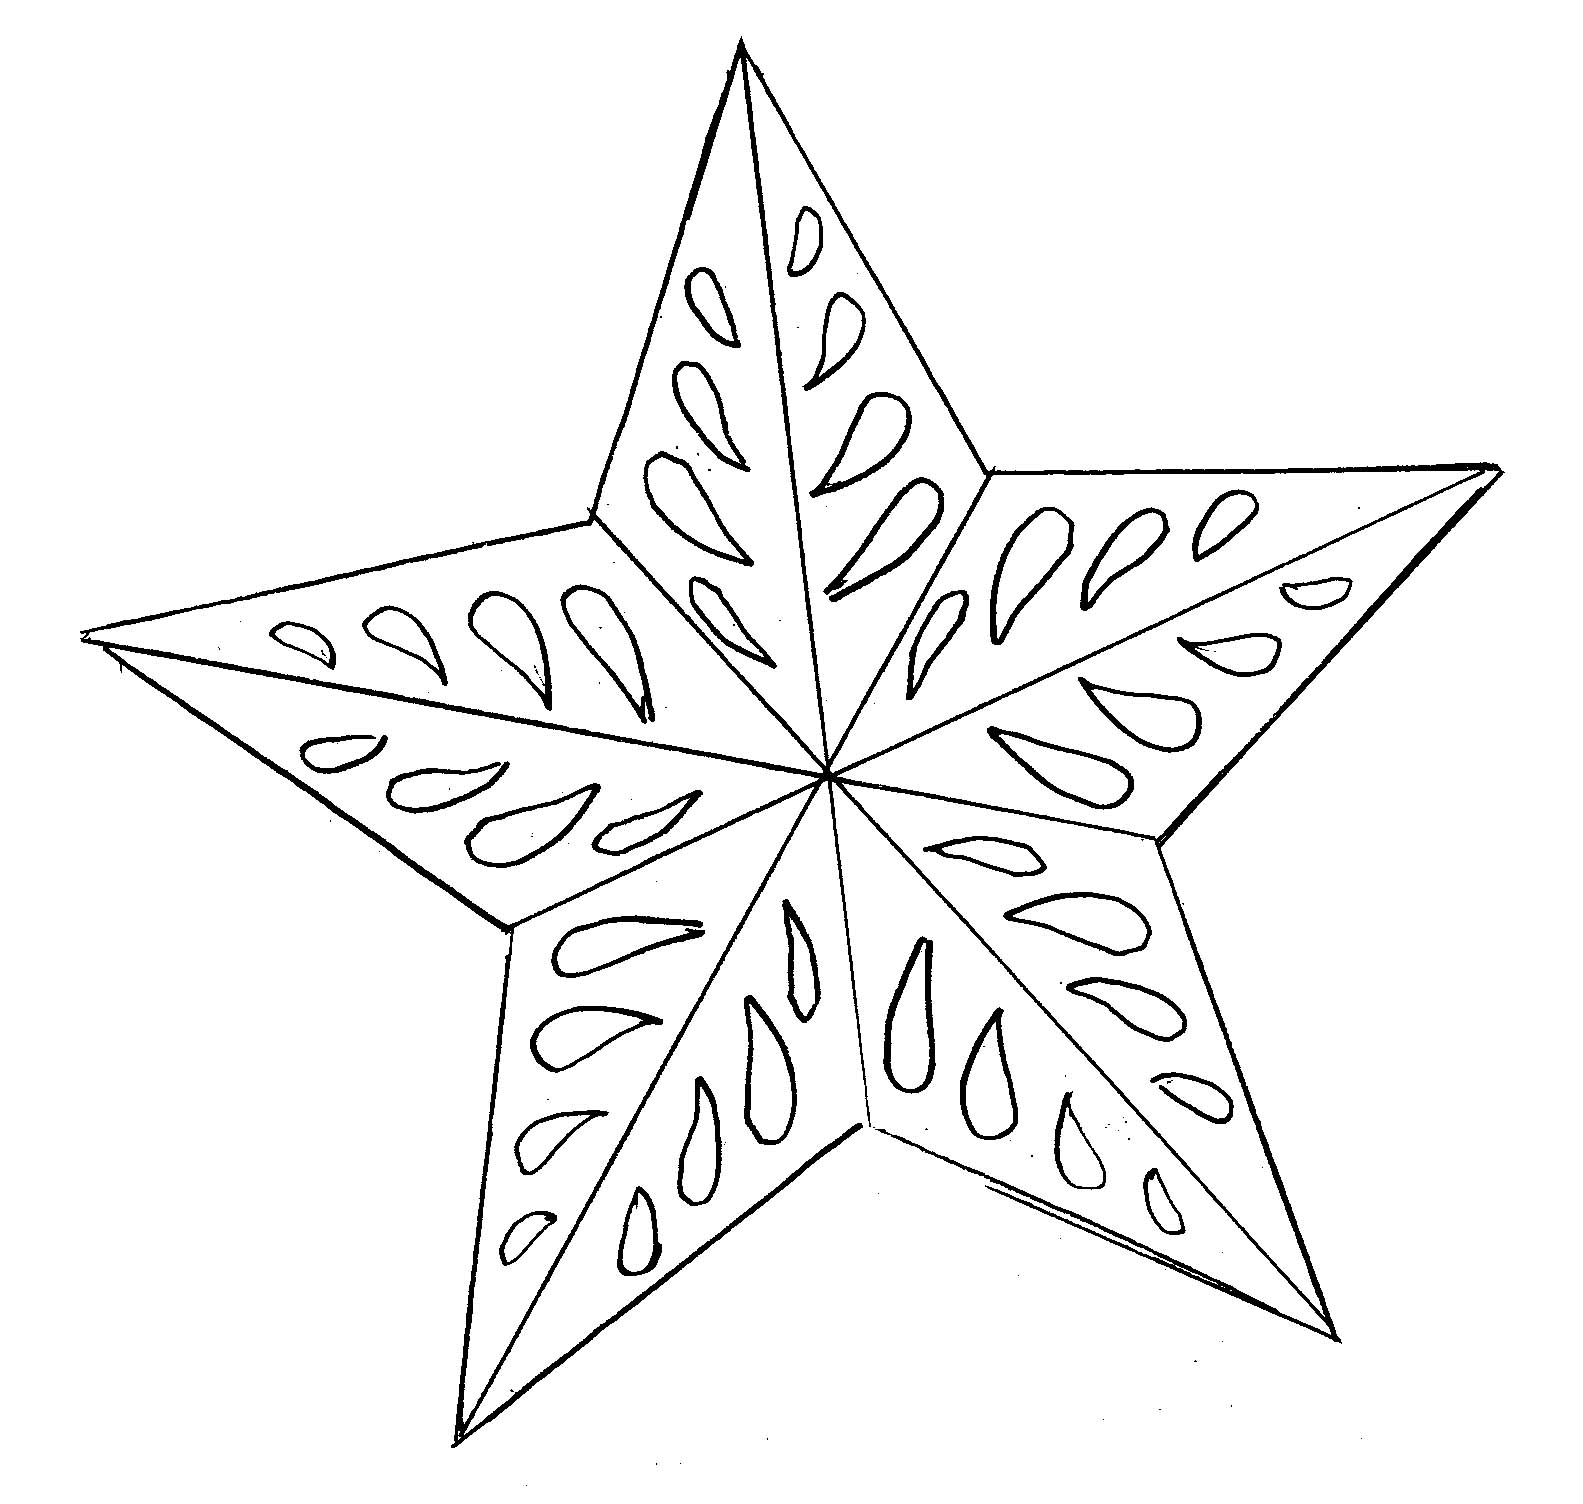 star template free - cute tree decorations with templates is it for parties